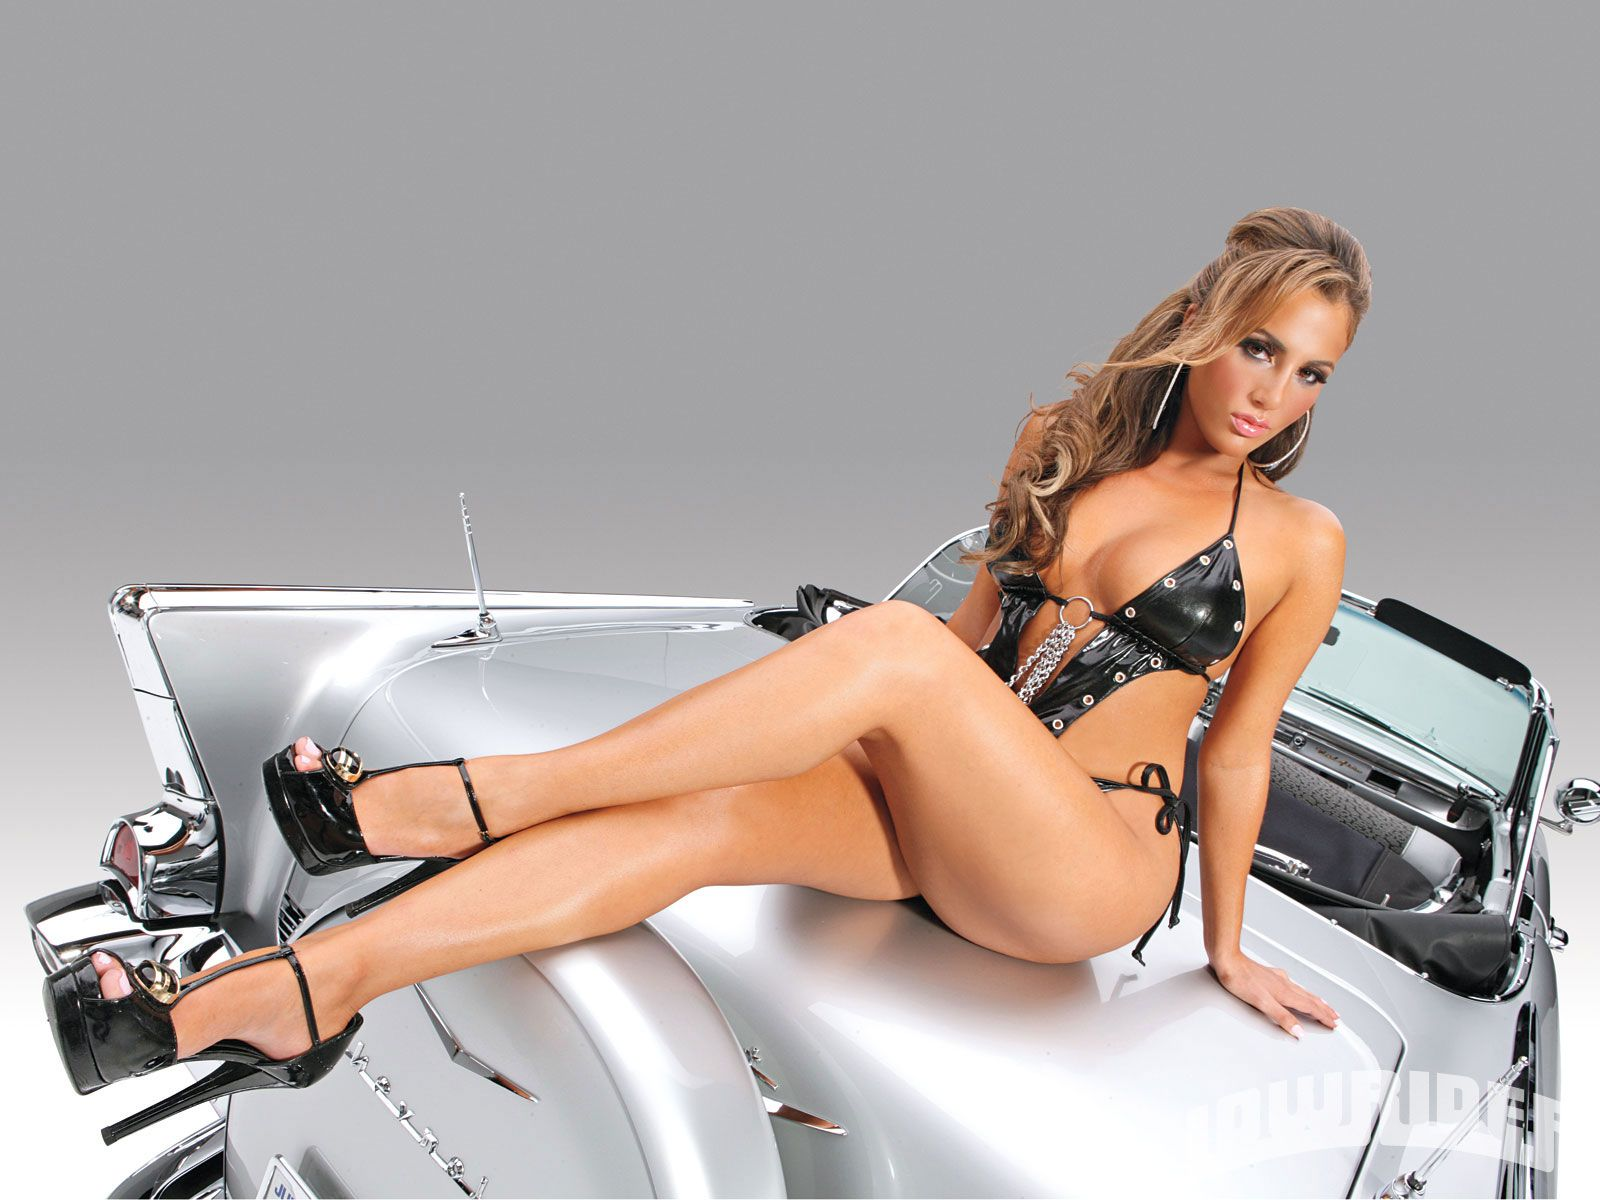 Lowrider Magazine model Natalin Avci on a silver 57 Chevy convertible. Lowrider Cars Wallpapers